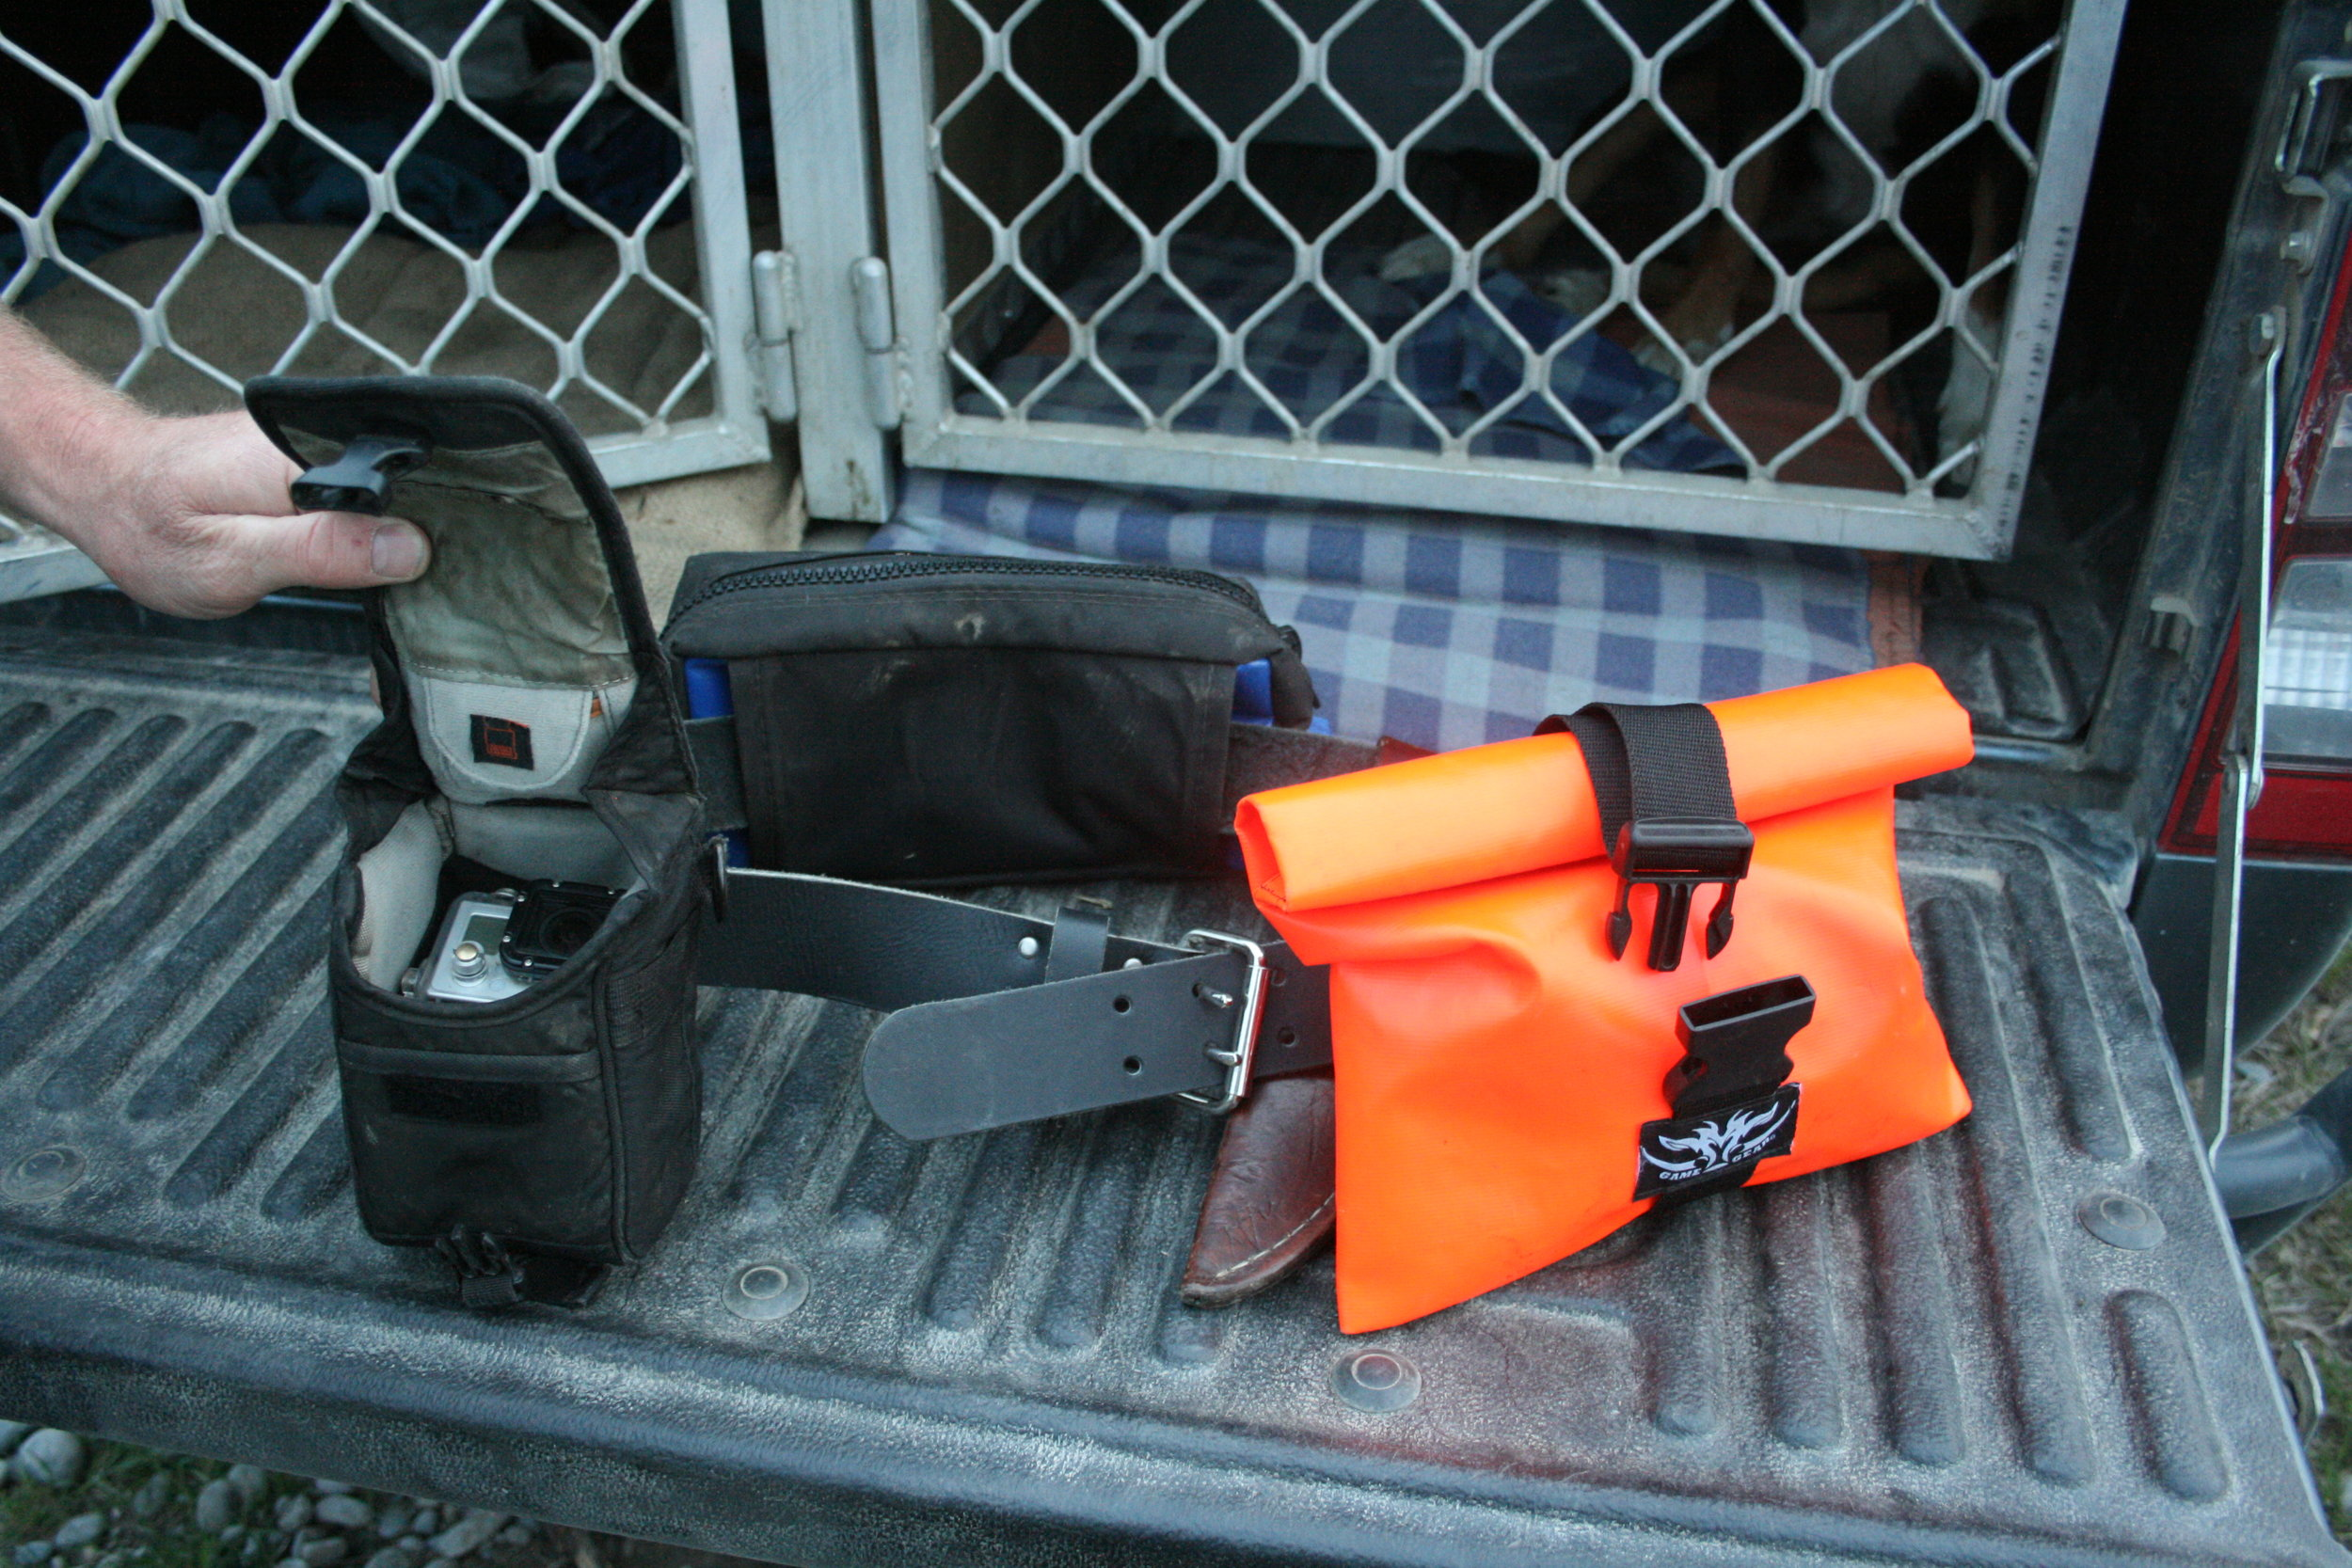 Having the camera gear in protective bags on a belt is a useful way to give quick access when the action suddenly starts.